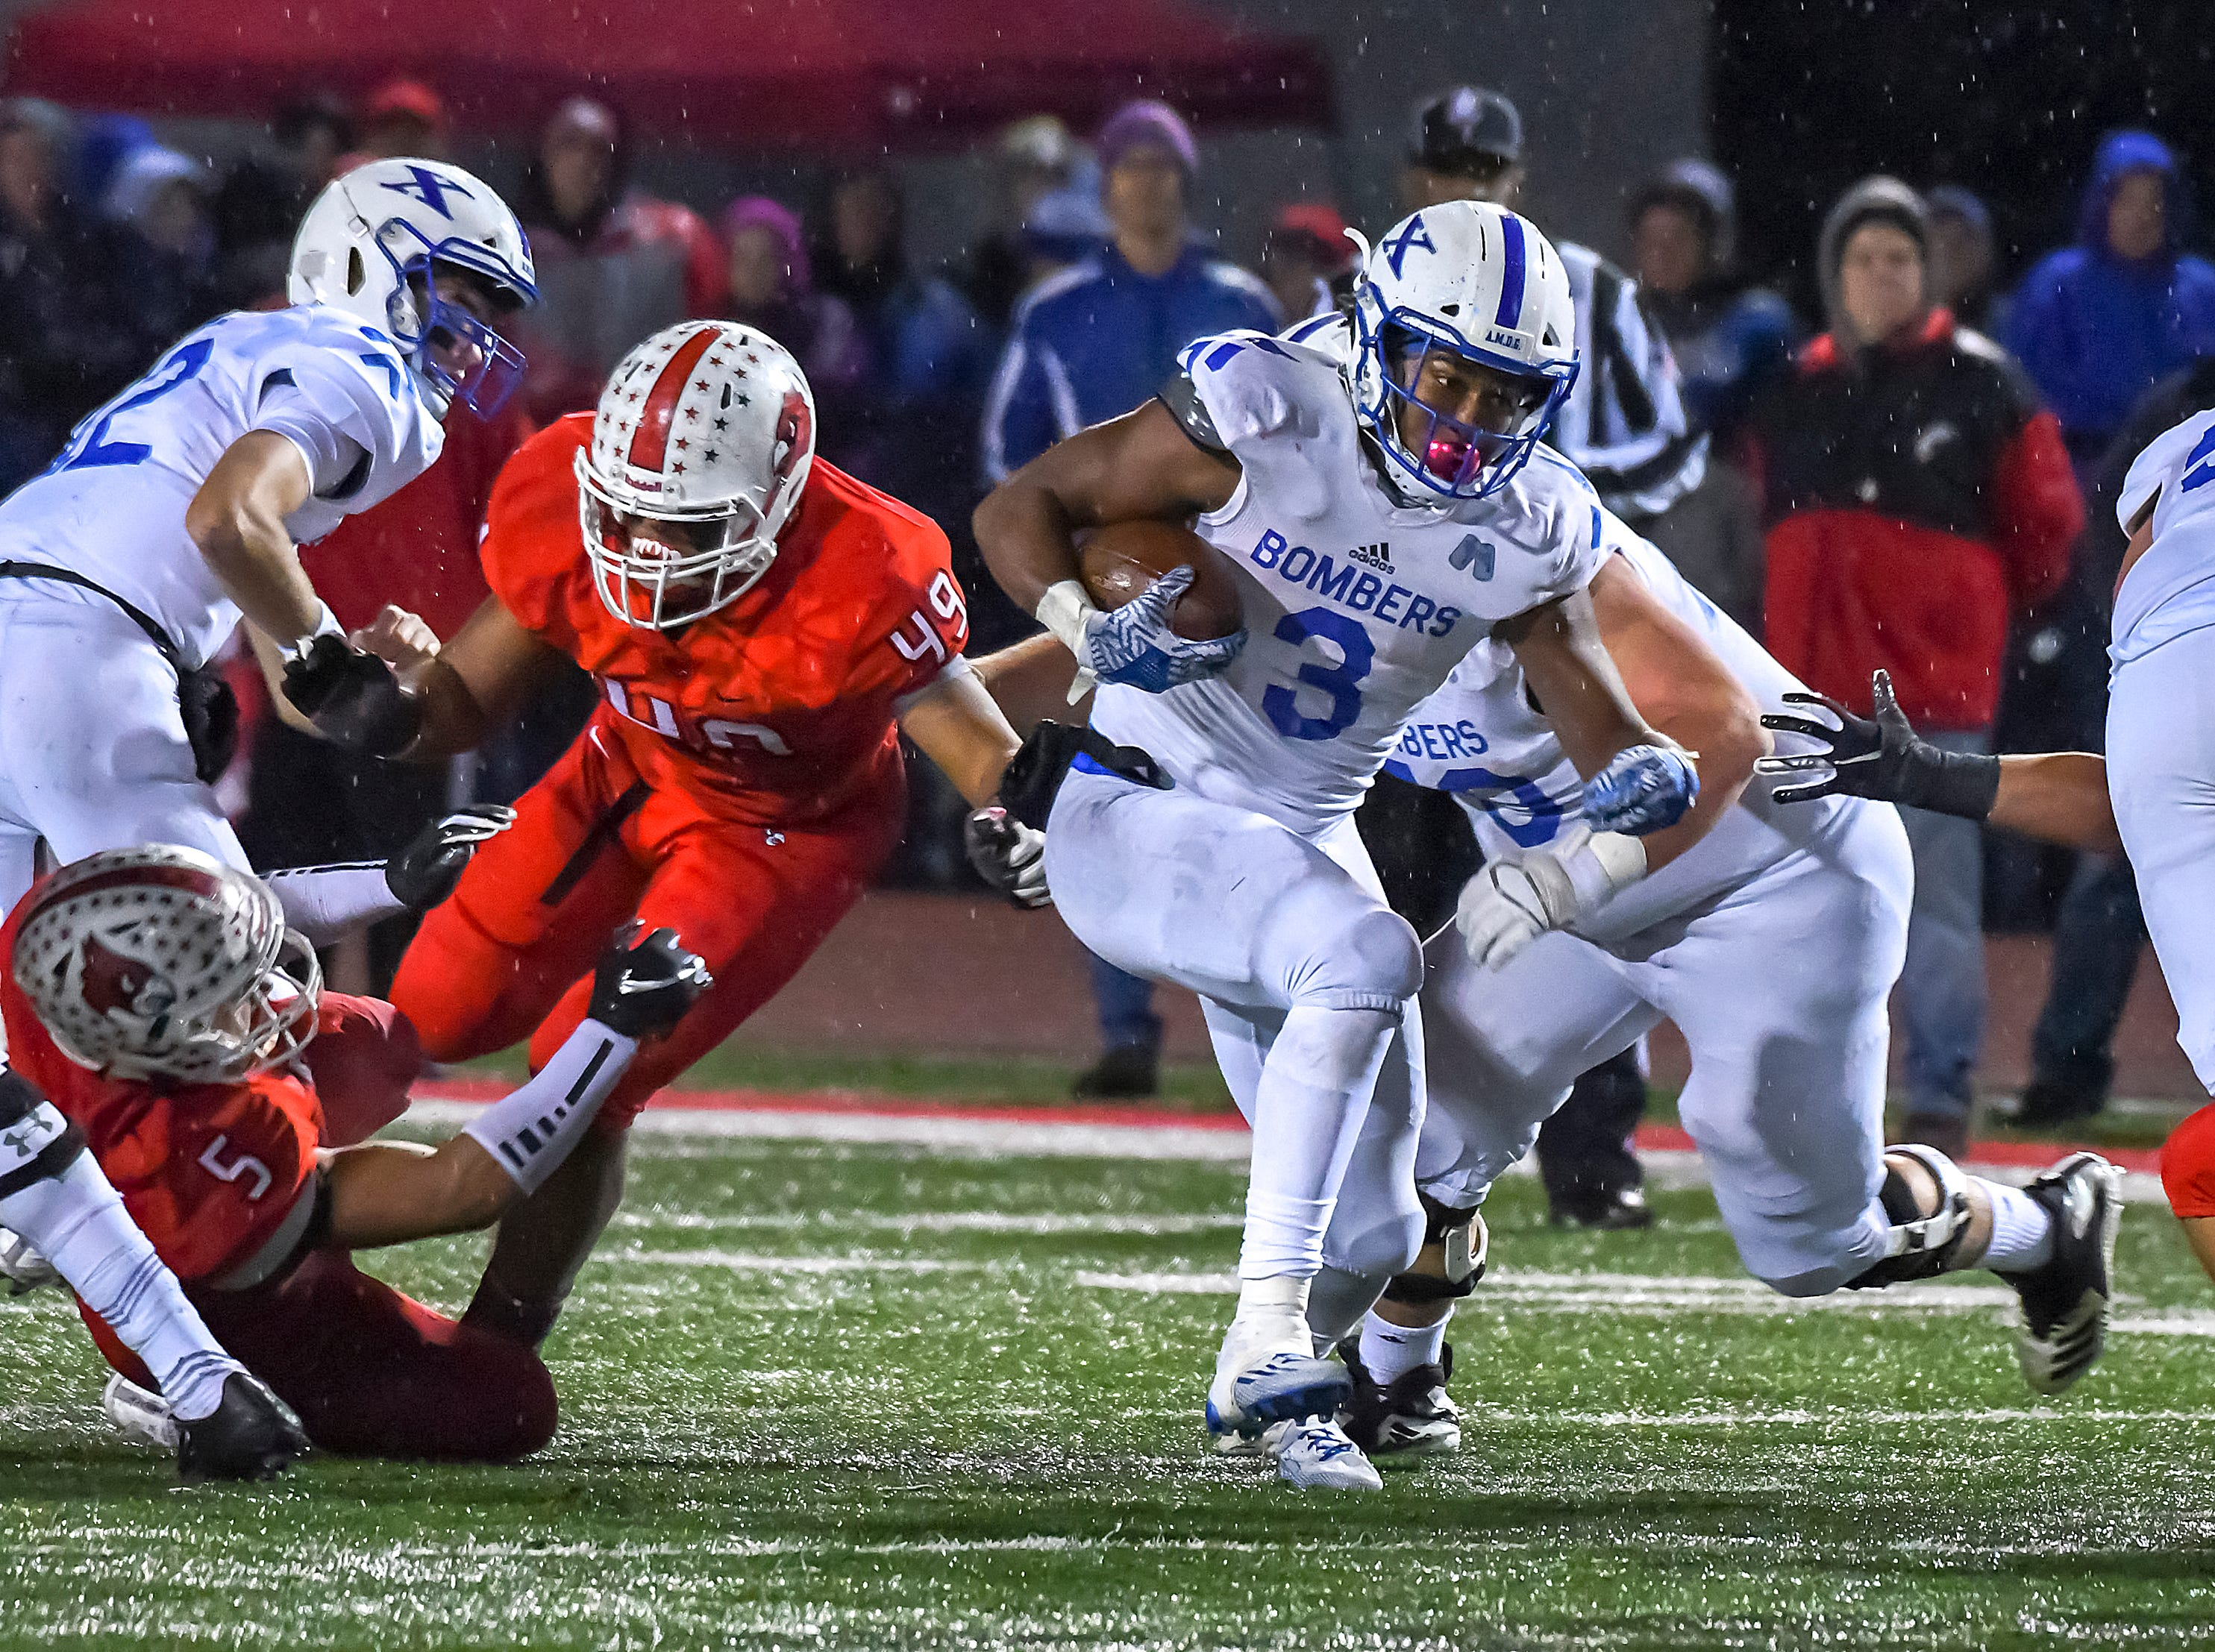 Running back Chris Payne of St. X runs the ball against Colerain in the OHSAA DI Region 4 Playoffs at Colerain High School,  Friday Nov. 2, 2018